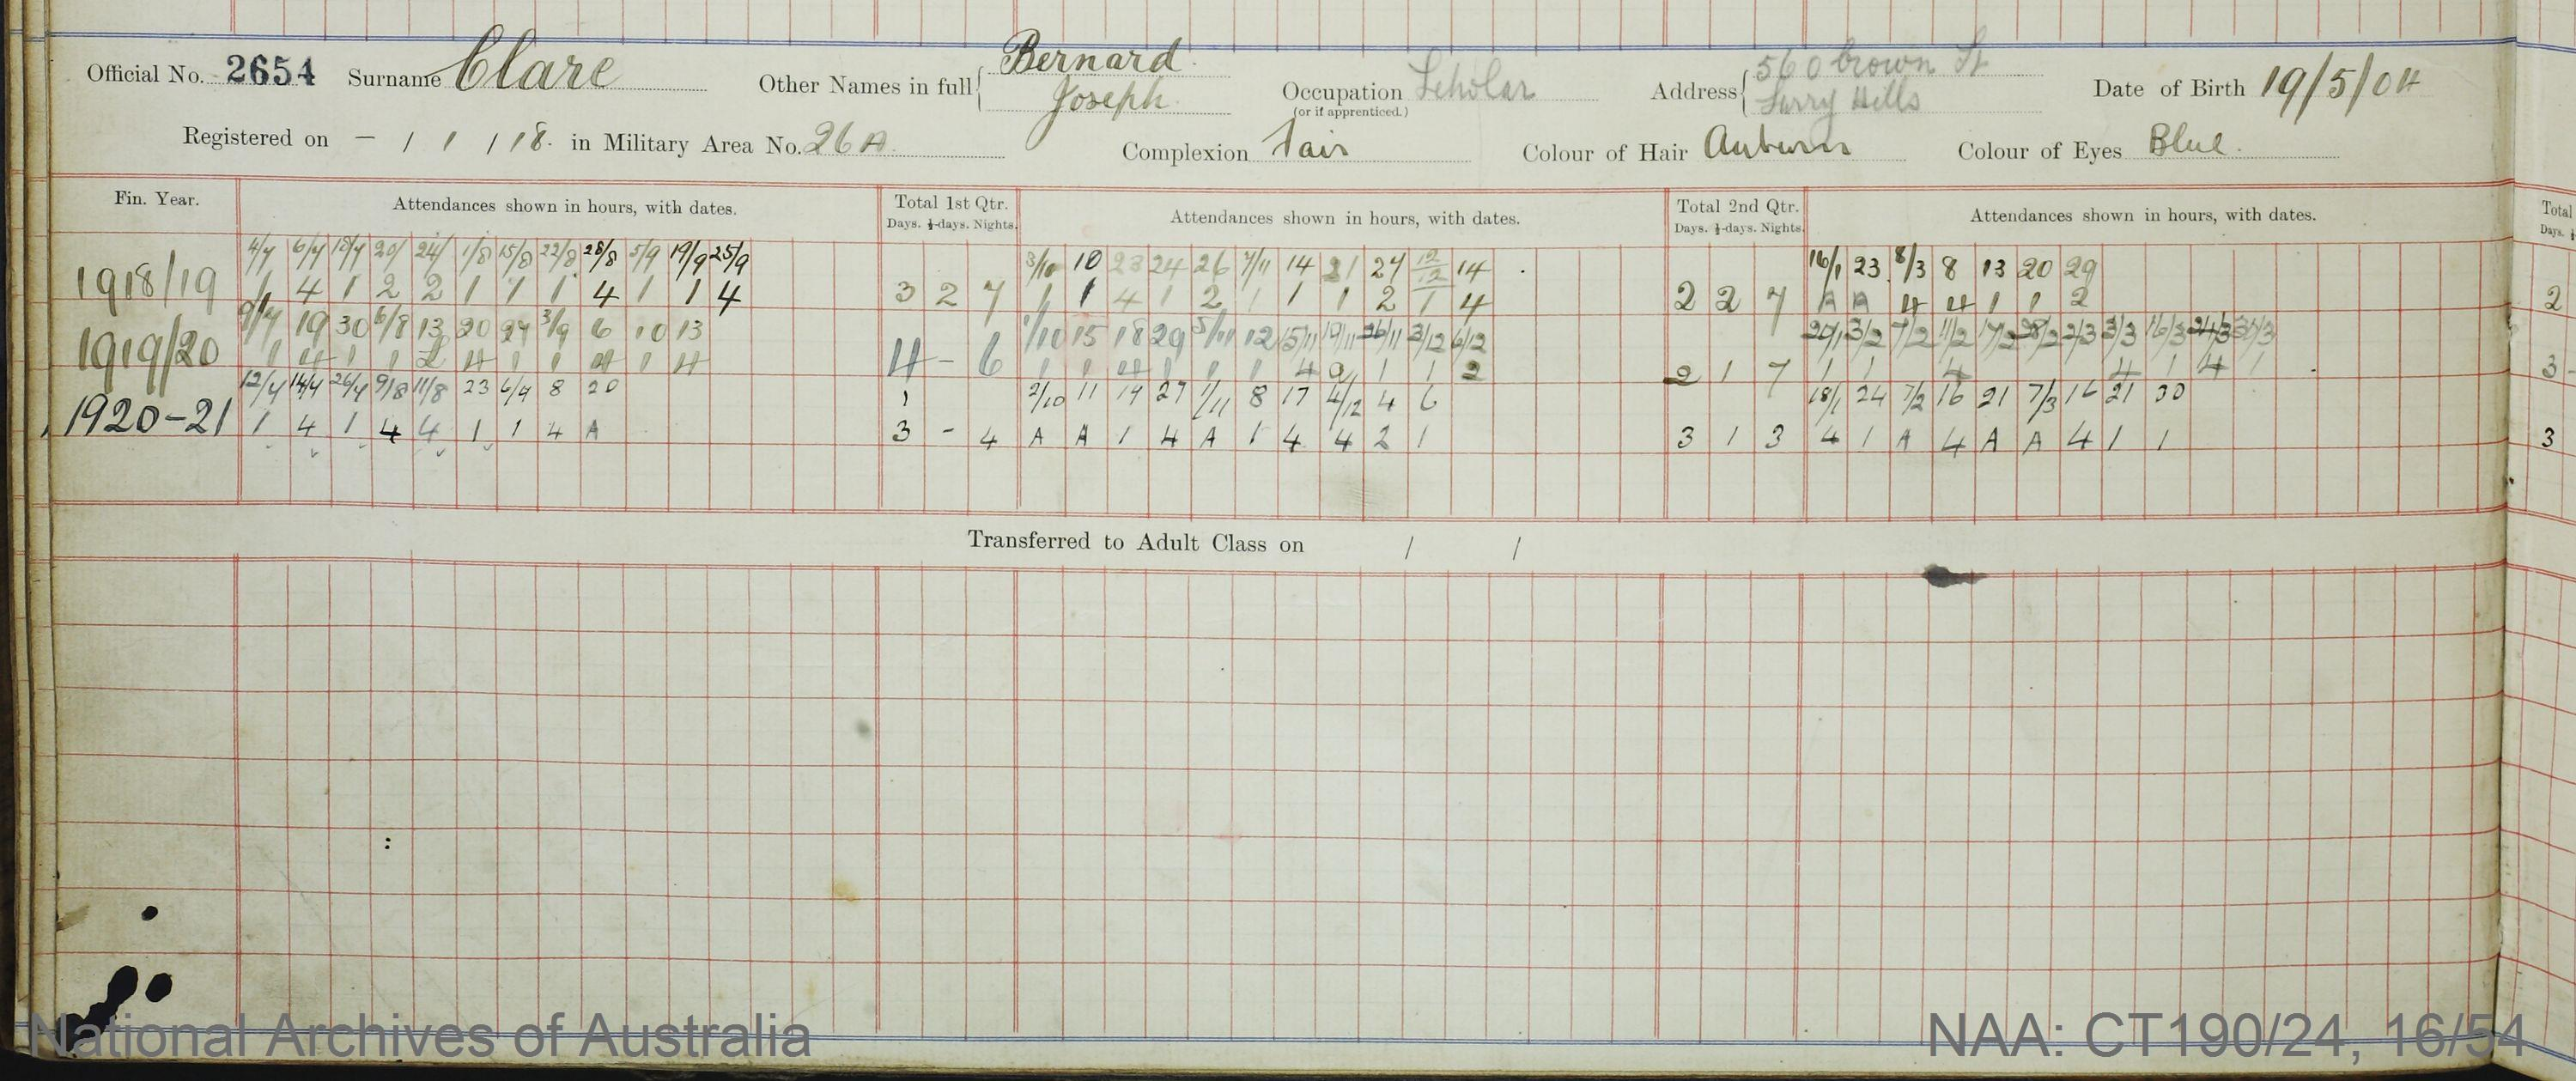 SURNAME - CLARE;  GIVEN NAME(S) - Bernard Joseph;  OFFICIAL NUMBER - 2654;  DATE OF BIRTH - 19 May 1904;  PLACE OF BIRTH - [Unknown];  NEXT OF KIN - [Unknown];  SERVICE/STATION - Sydney NSW;  REGISTRATION DATE - January 1918